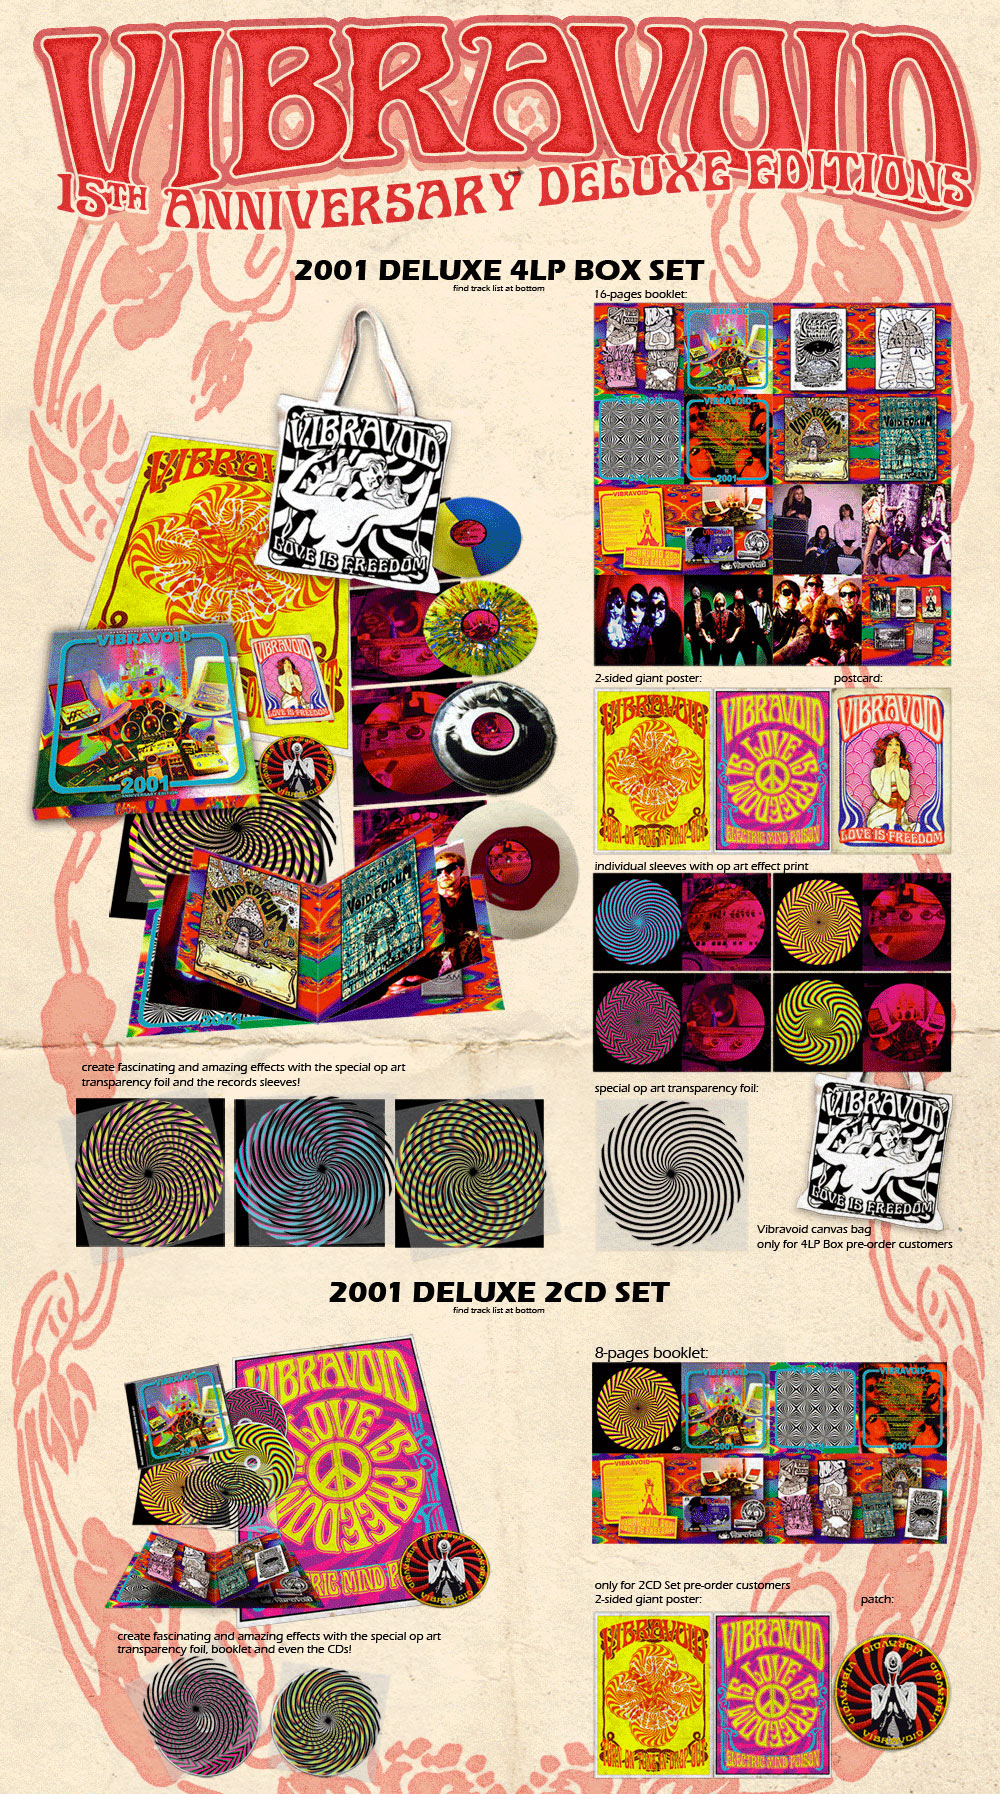 Vibravoid Set To Release New Deluxe Edition of '2001'